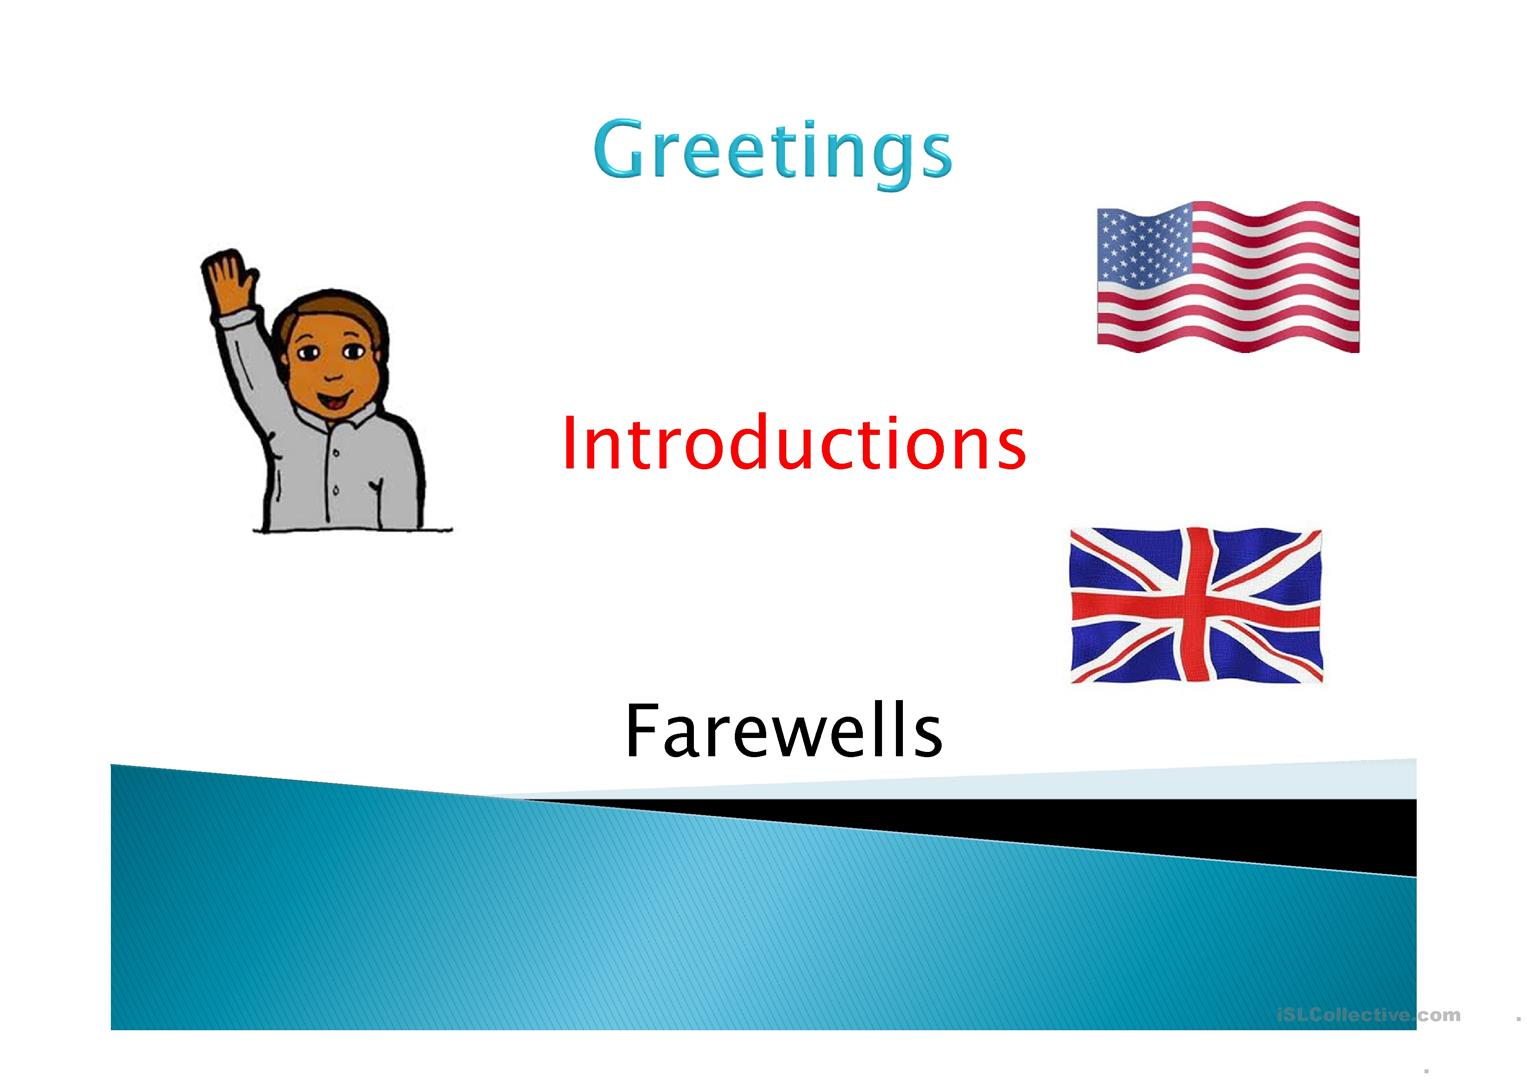 33 free esl greetings powerpoint presentations exercises greetings introductions farewells m4hsunfo